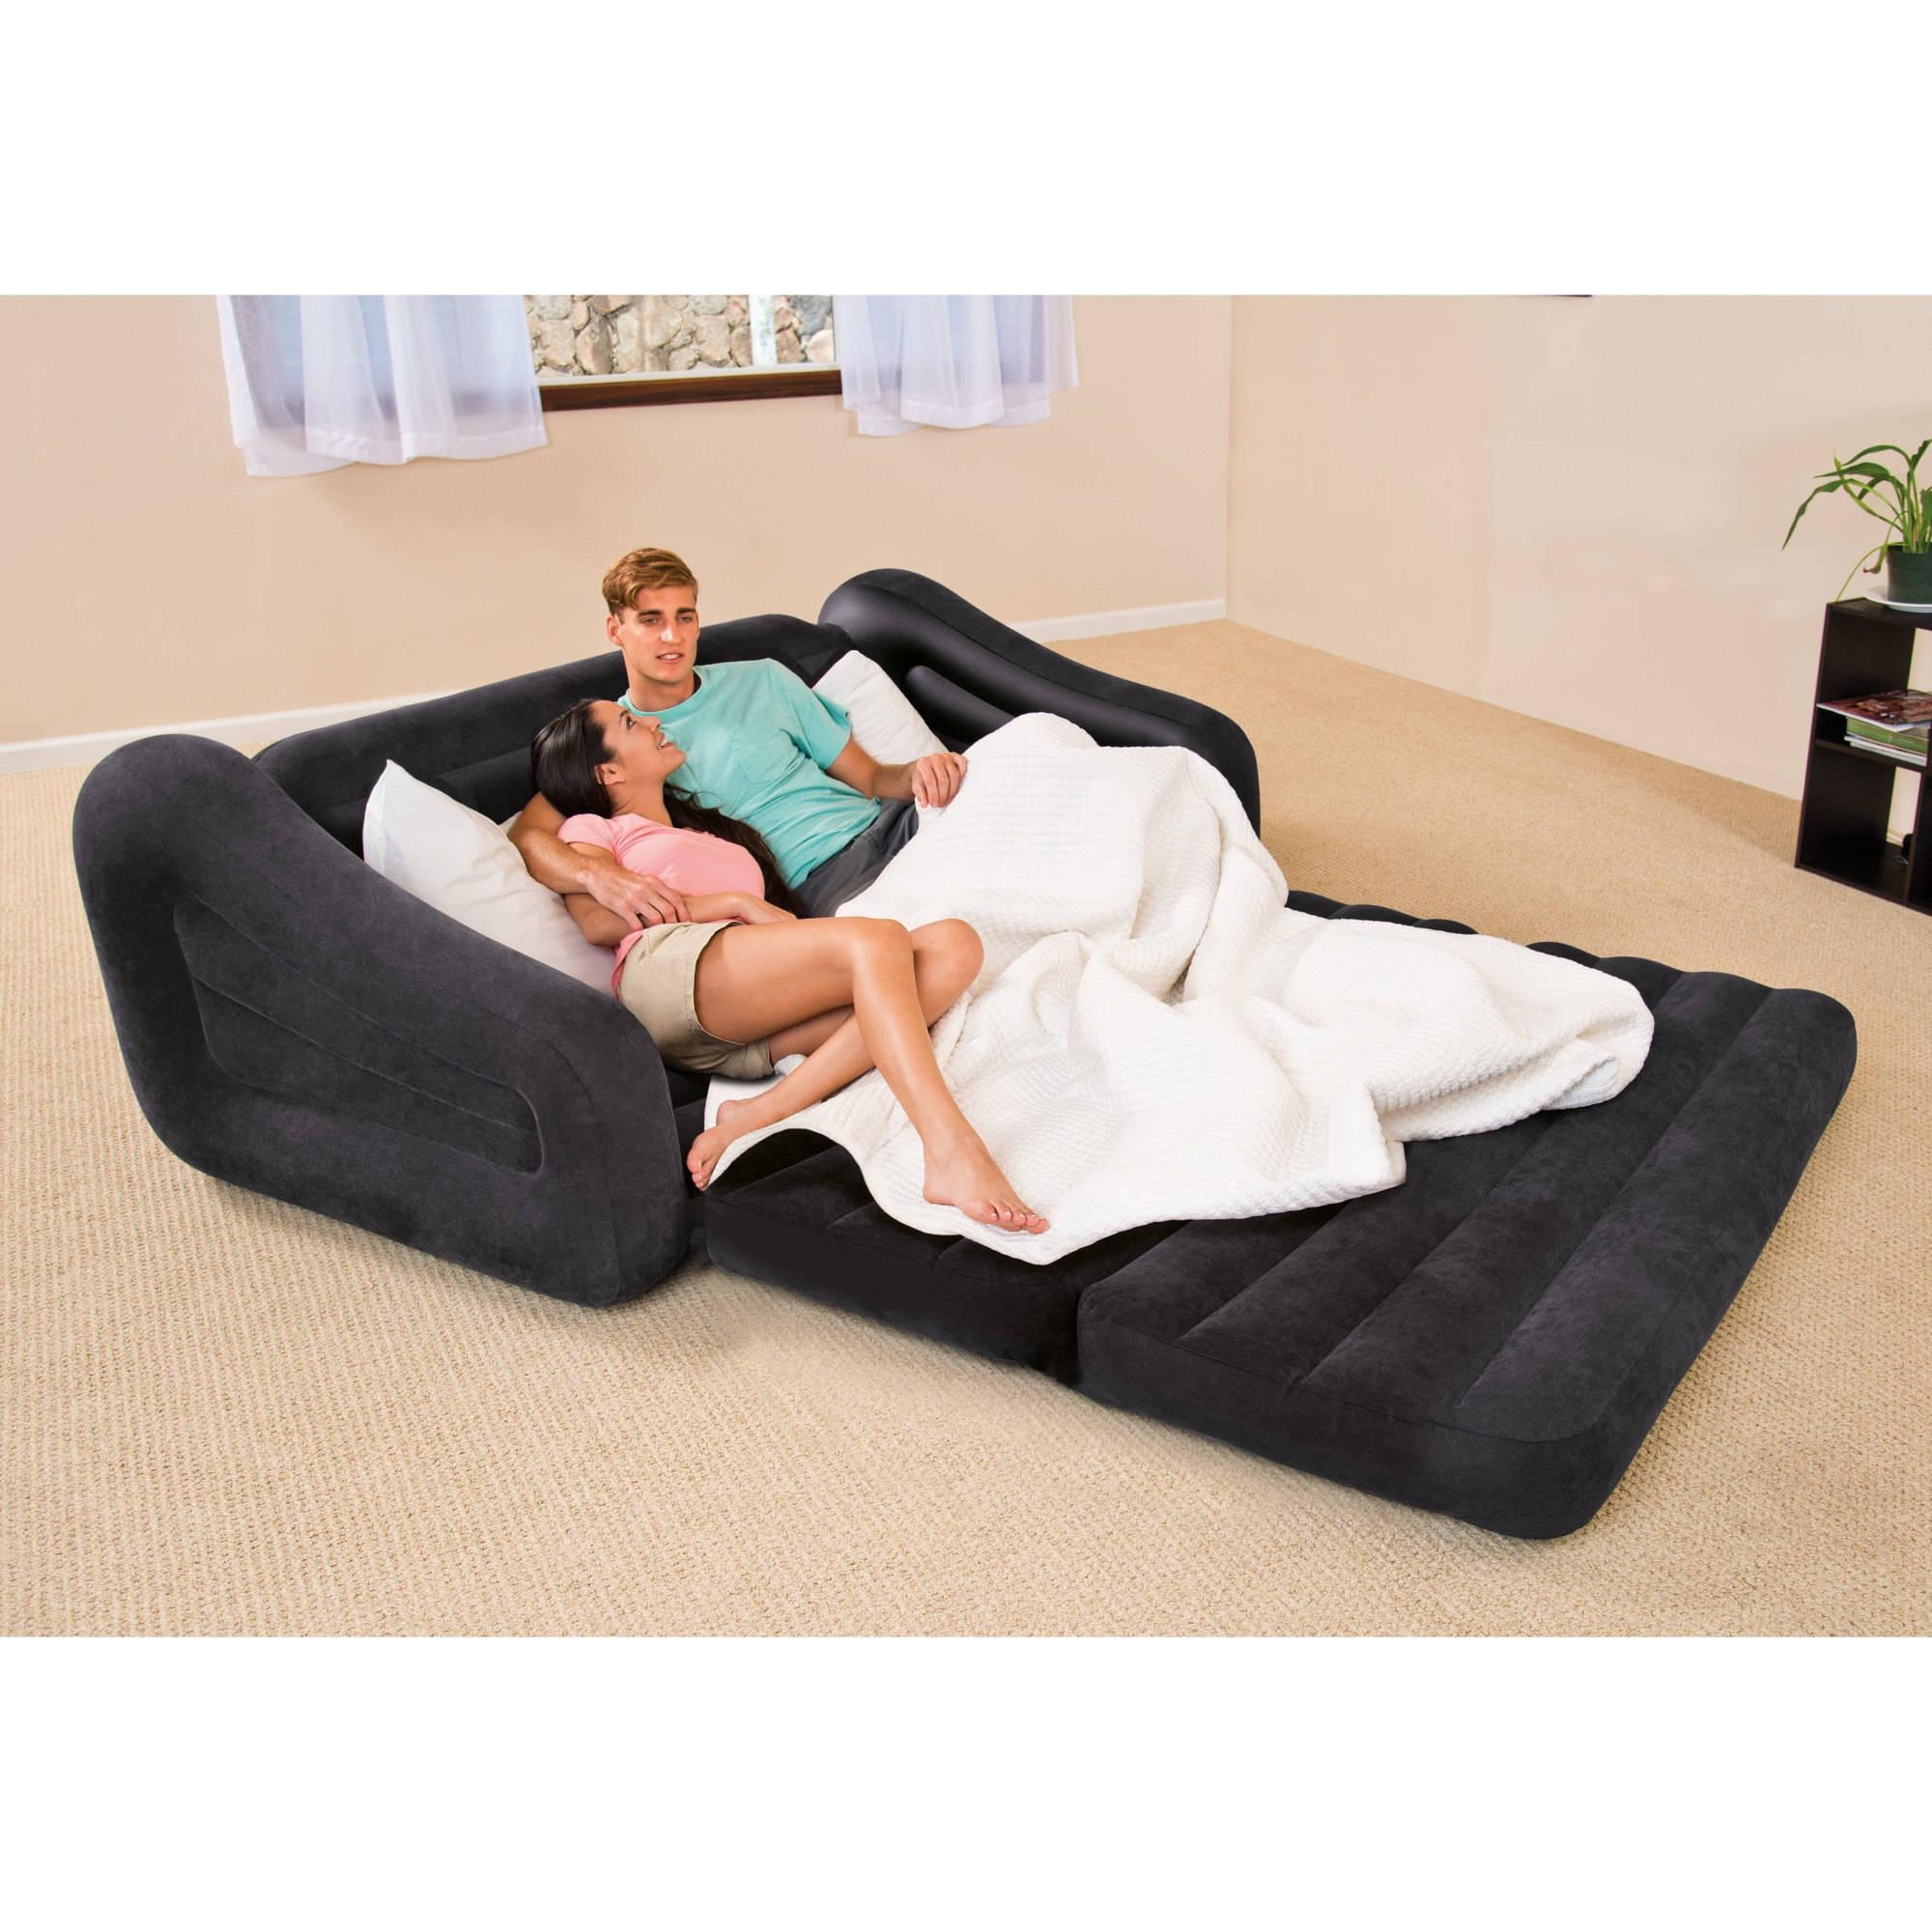 Intex Queen Inflatable Pull Out Sofa Bed – Walmart Pertaining To Sofa Beds With Mattress Support (Image 8 of 20)